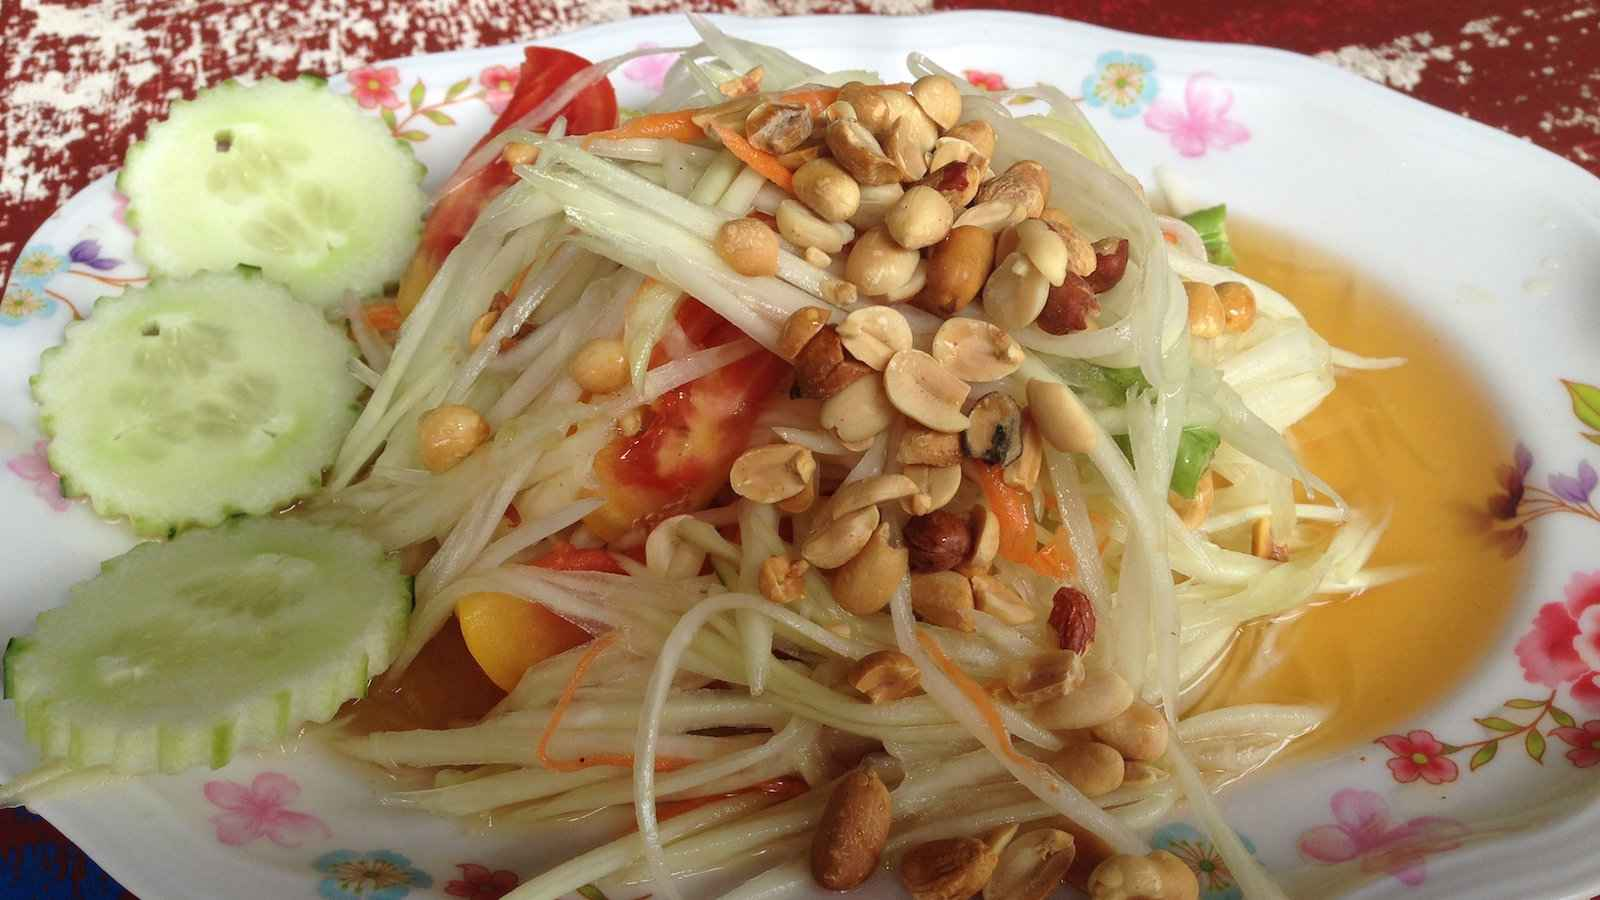 Tam mak hoong is a spicy papaya salad you can find at street food markets in Laos